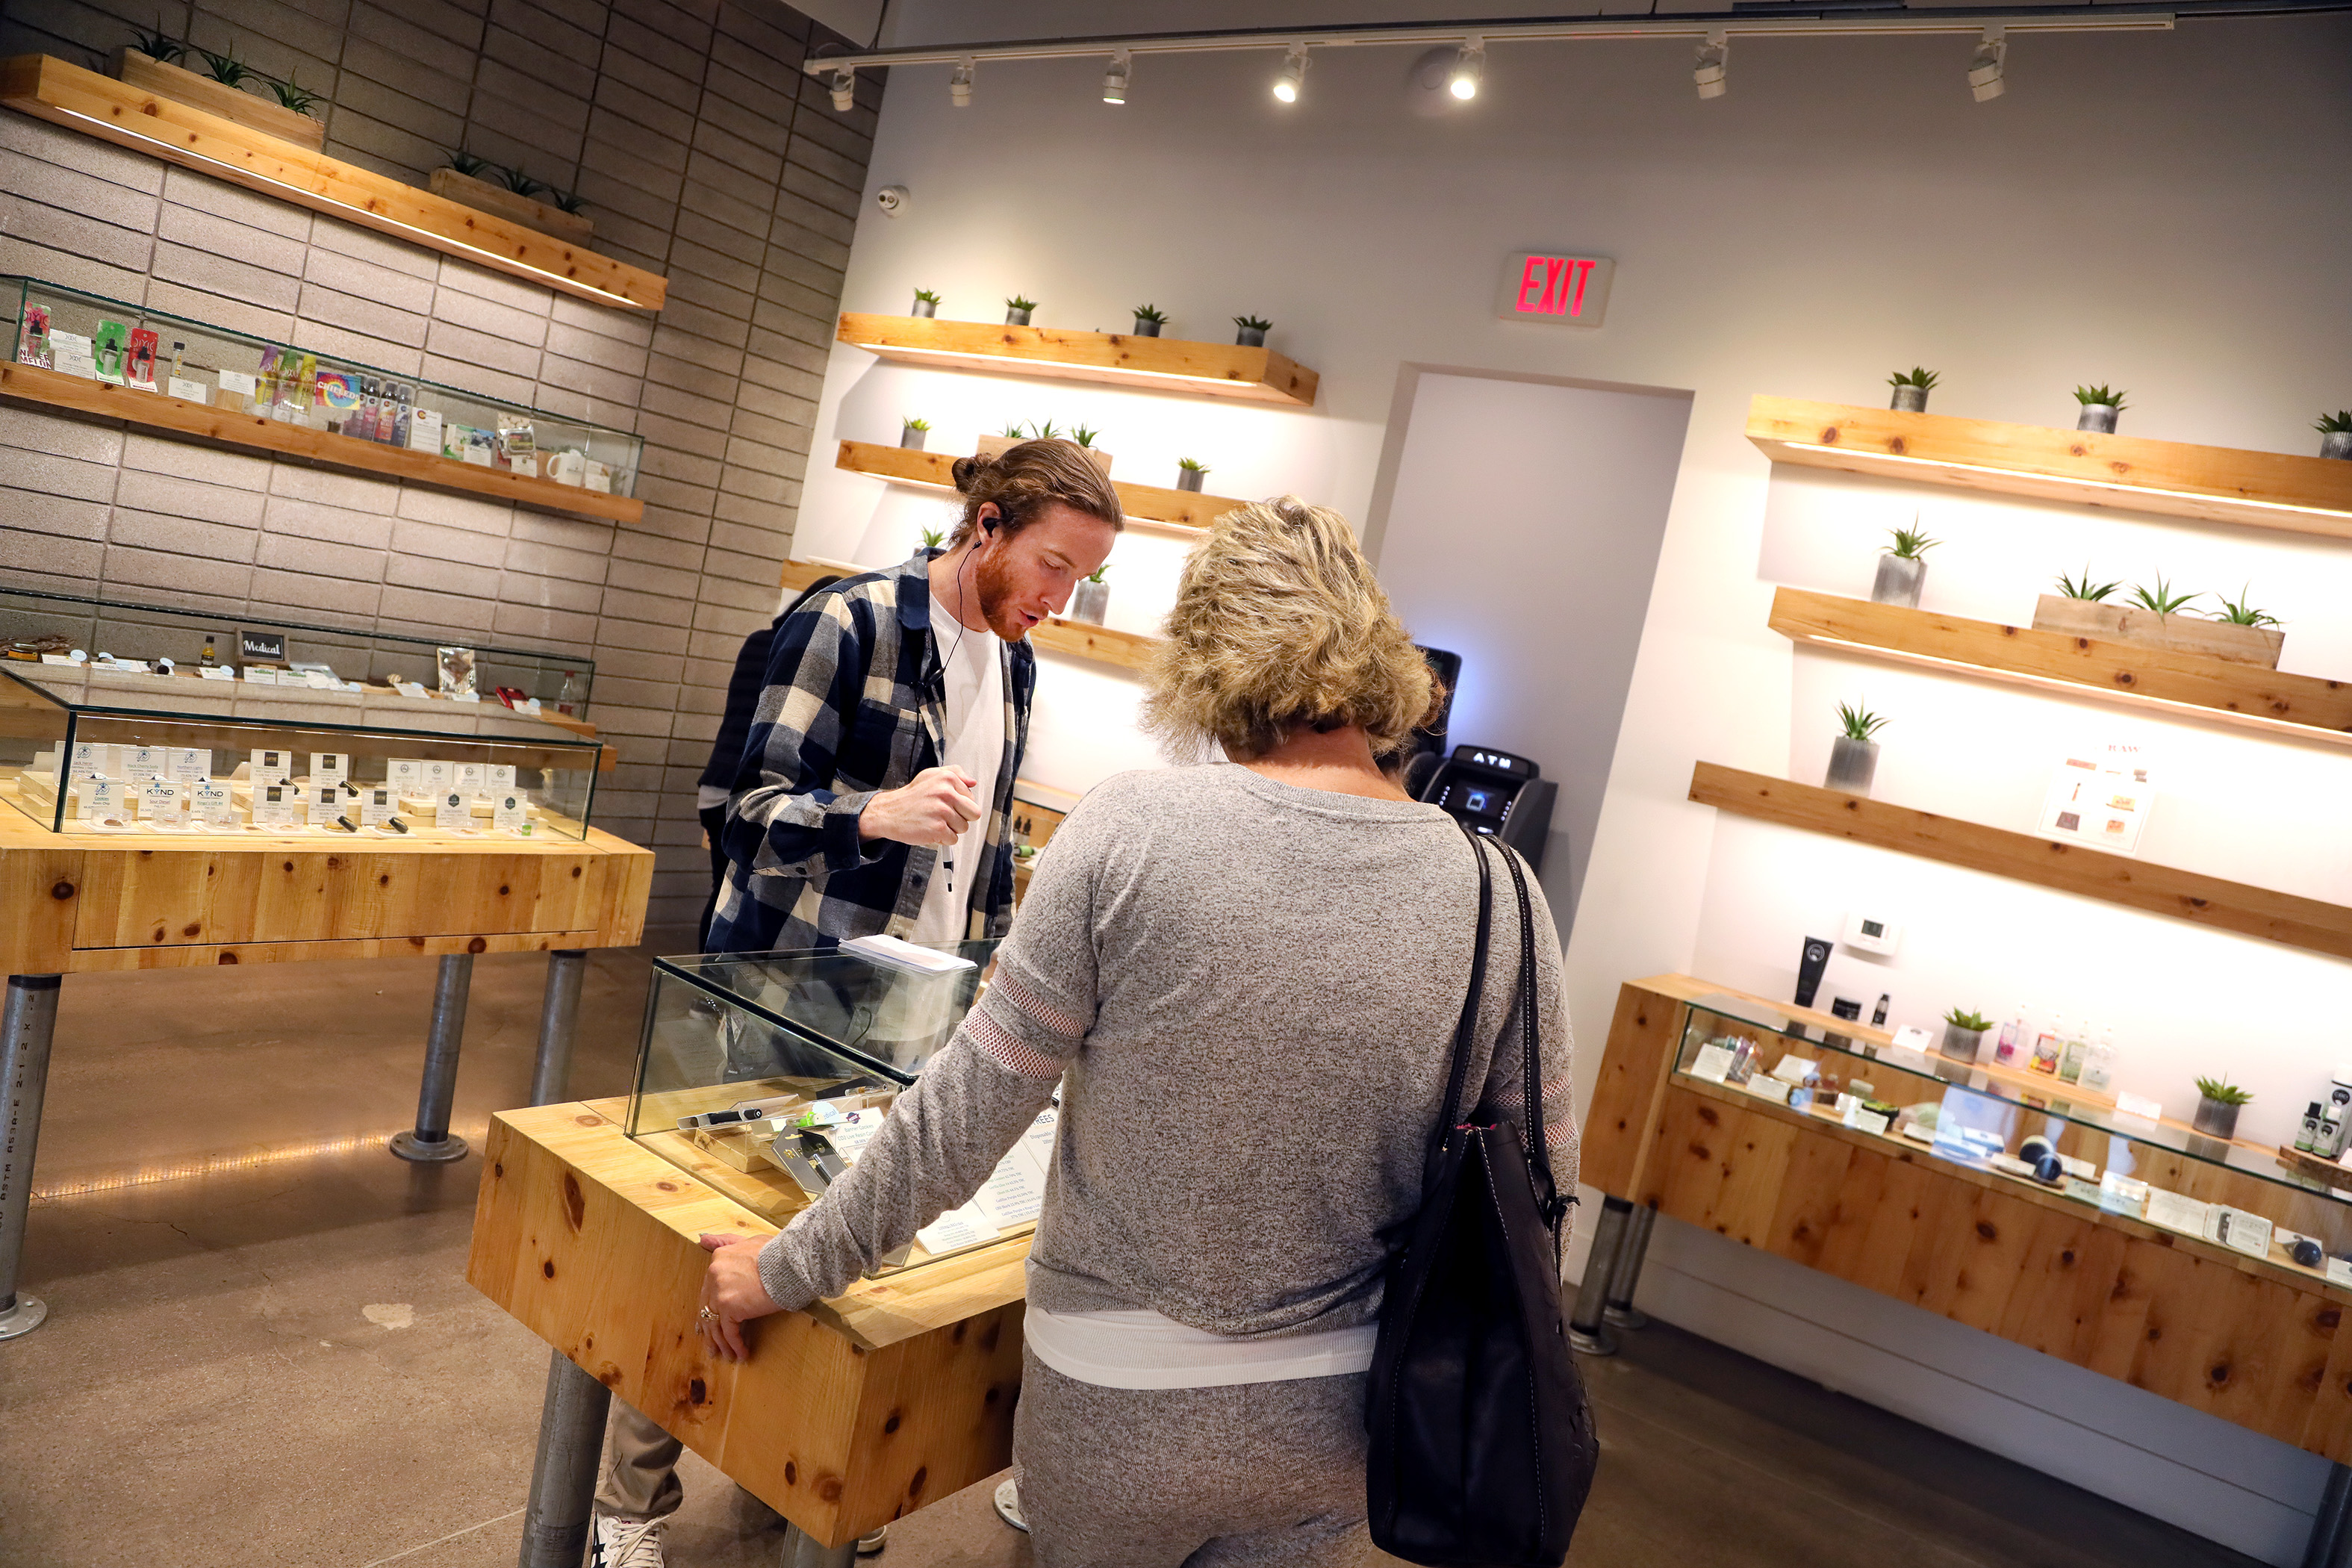 Customer at The Source dispensary